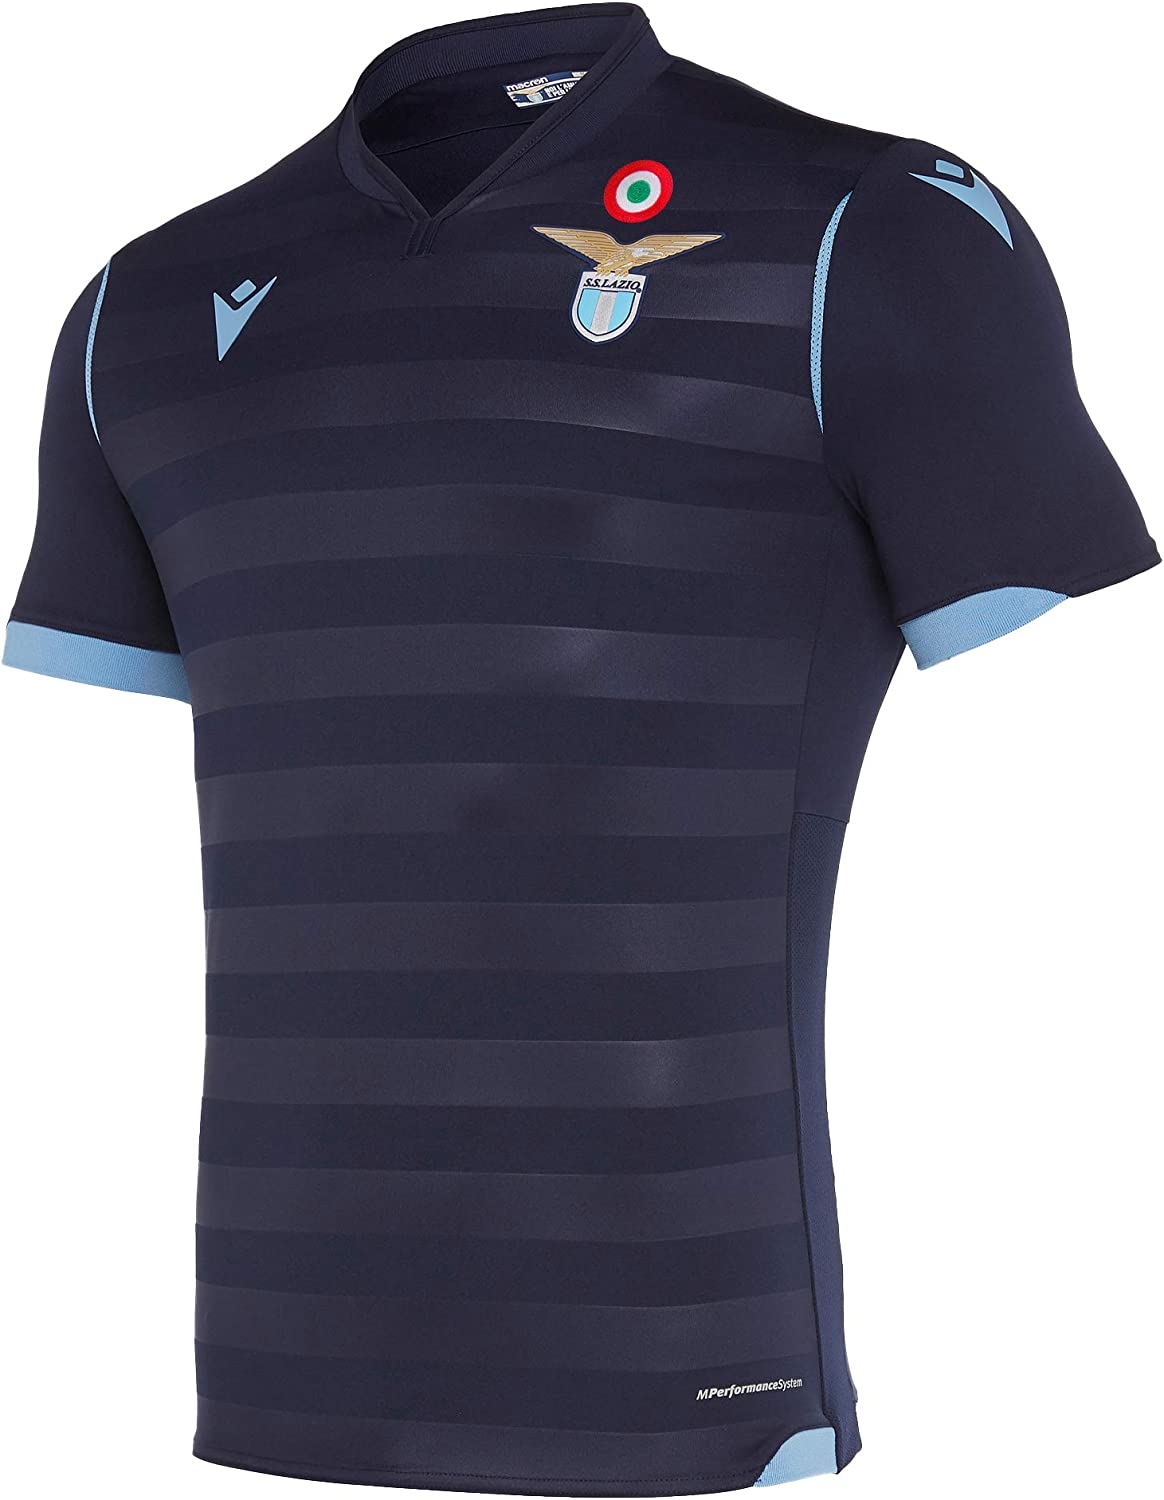 Macron SSL M19 Gara Third Ufficiale Mm Sr Camiseta, Hombre